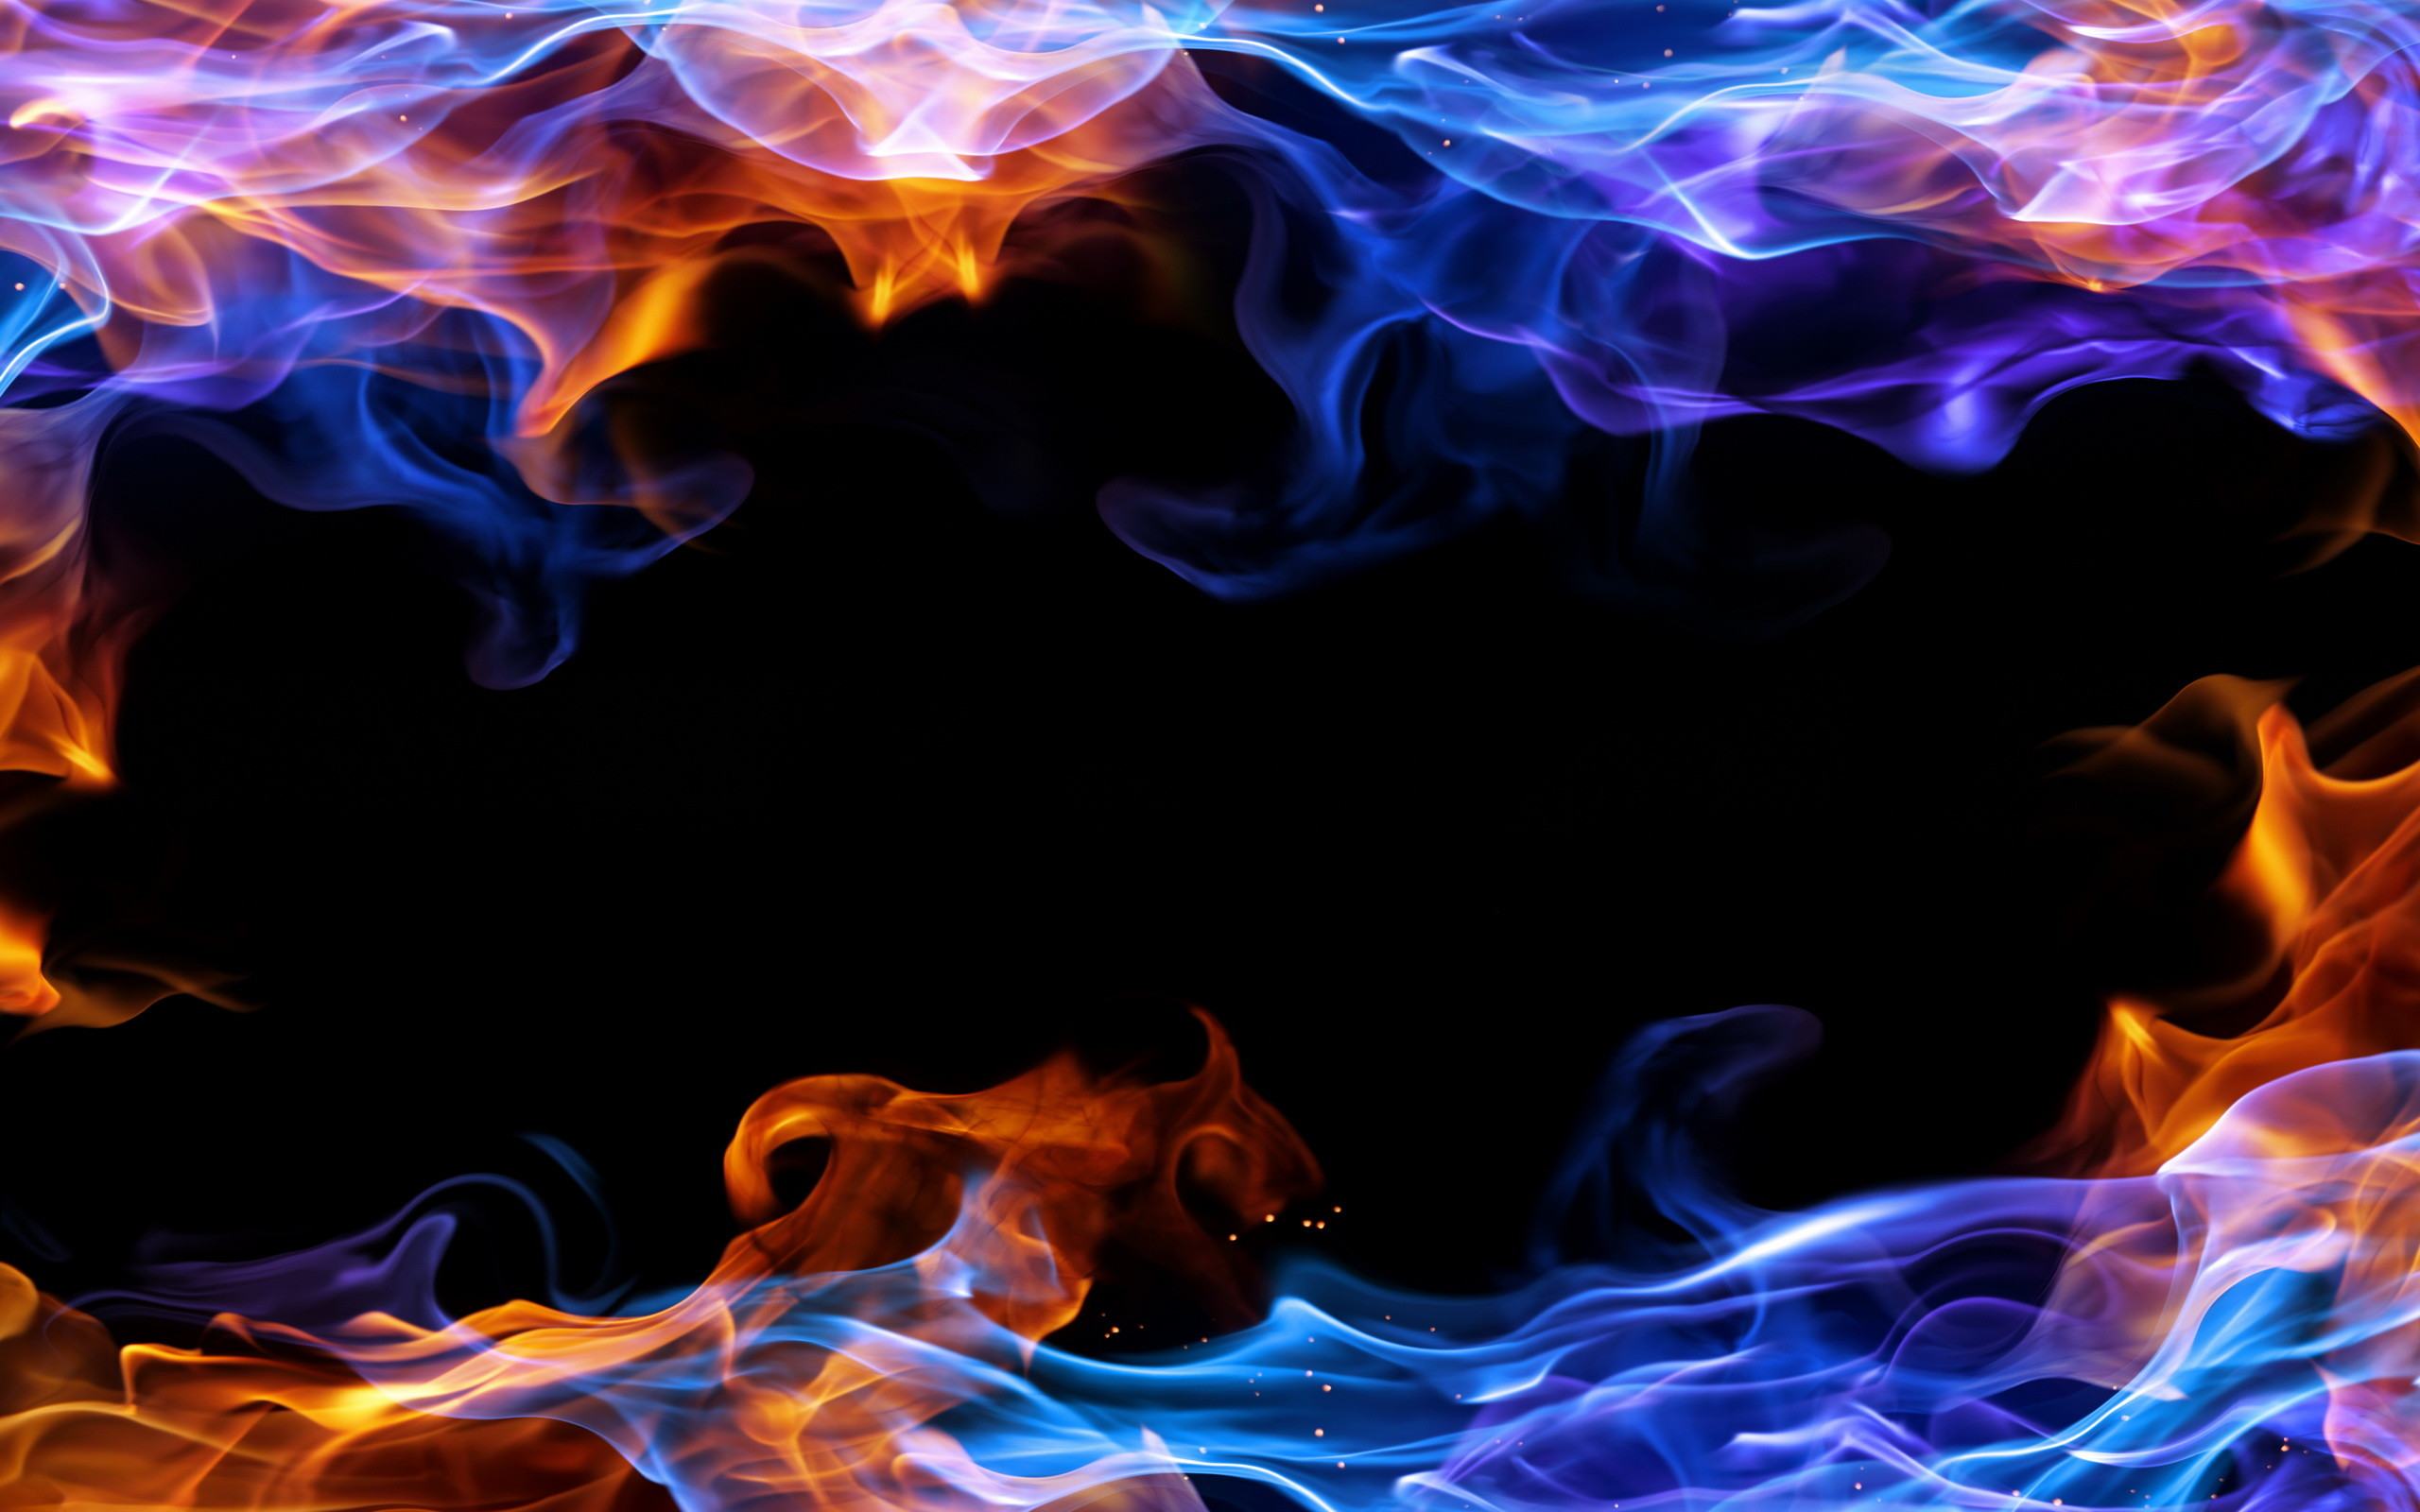 2560x1600 - Red and Blue Fire 36